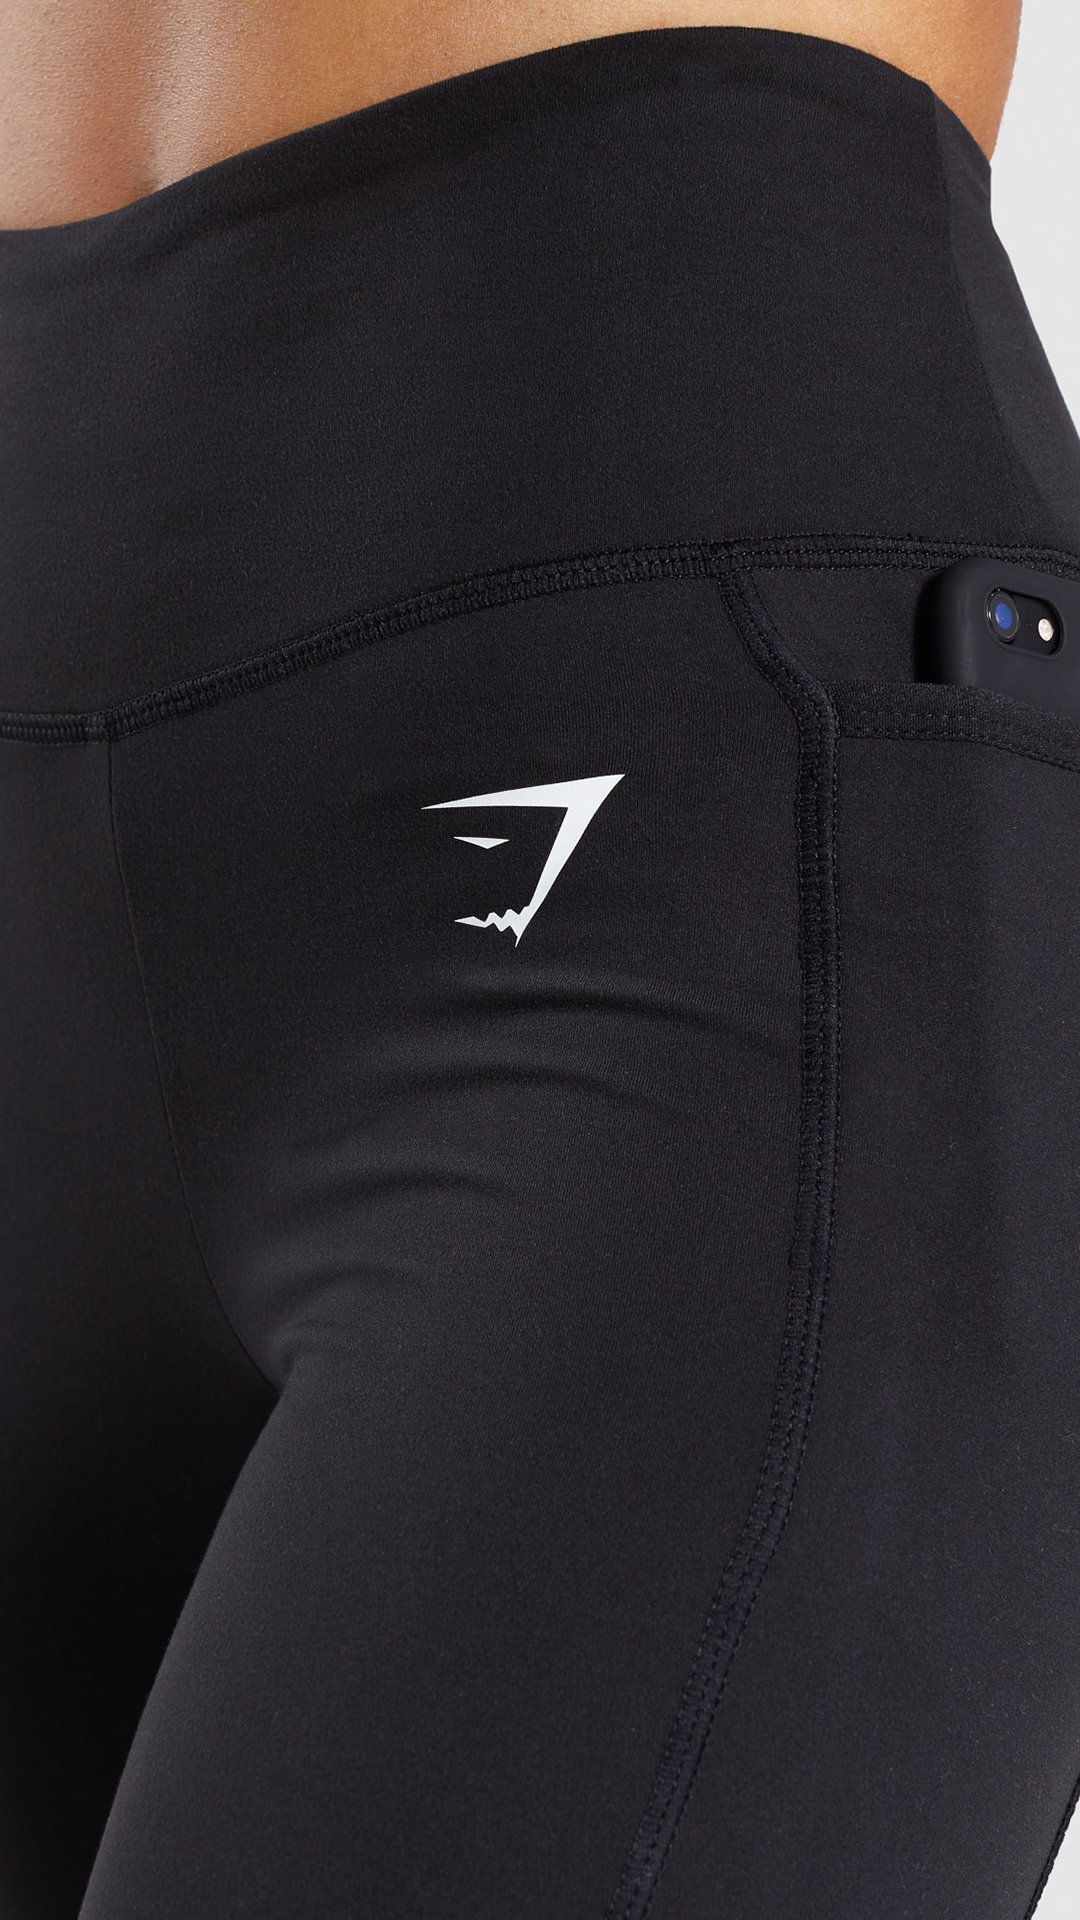 368e5b883007a The Dreamy Black Leggings 2.0, with high-waisted fit, soft fabric blend and  concealed side pockets on waistband, perfect for your workout essentials!